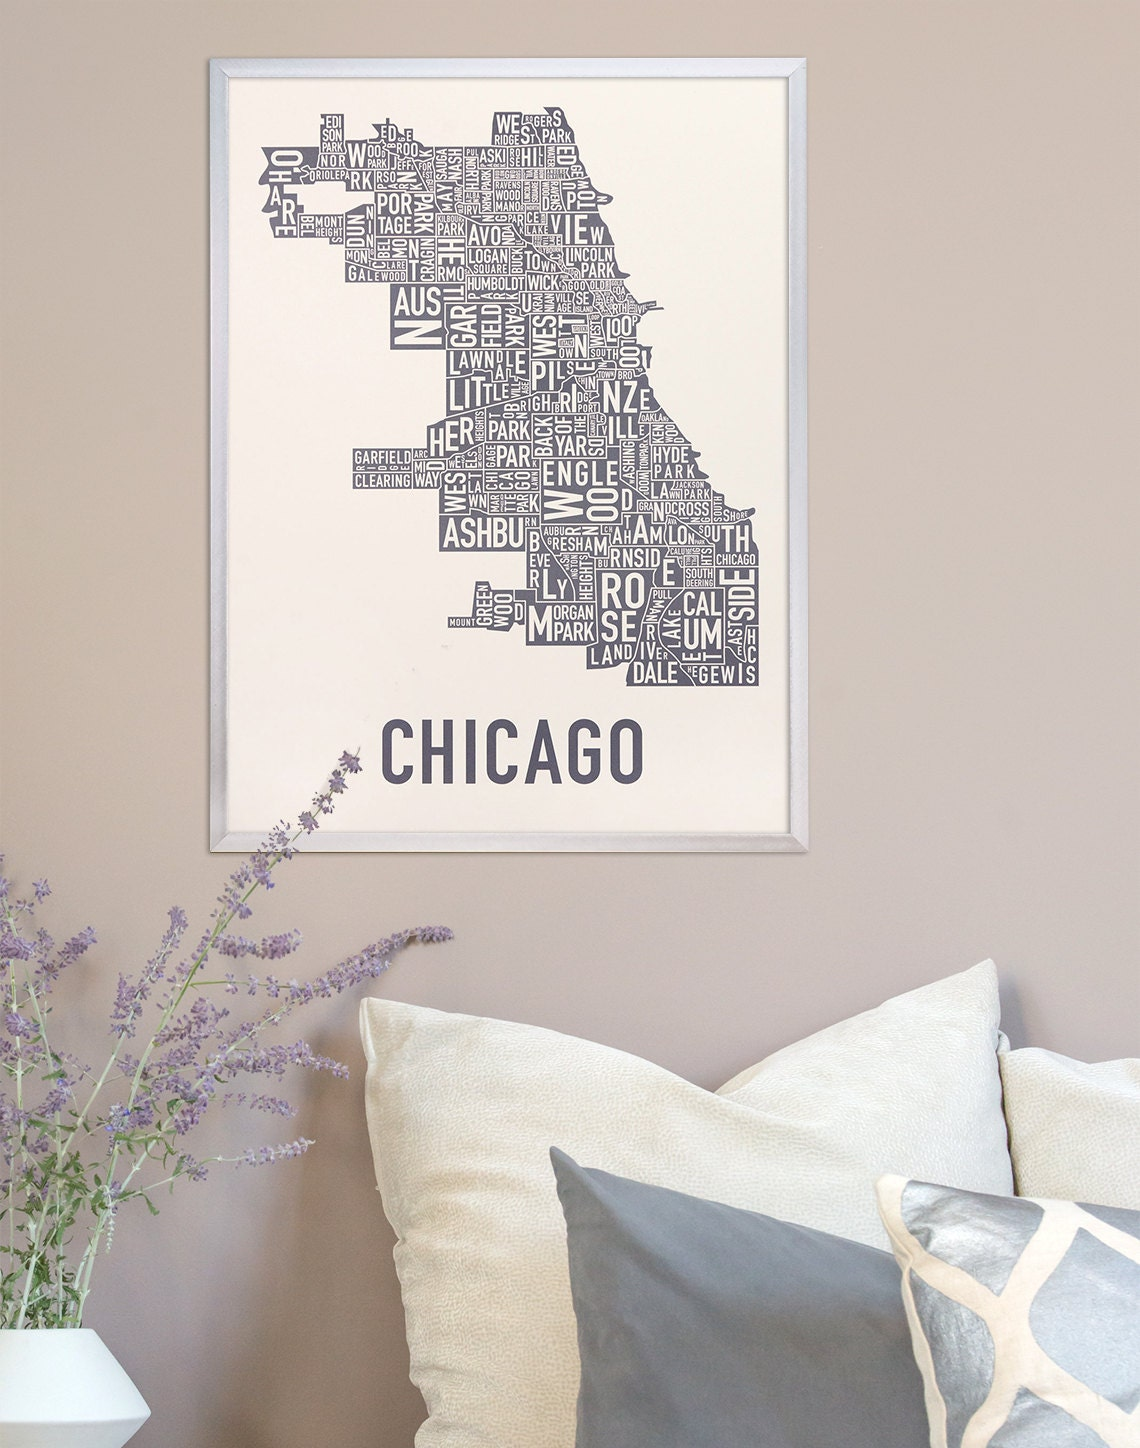 Chicago Neighborhood Map Poster Original Chicago Neighborhood - Chicago map etsy